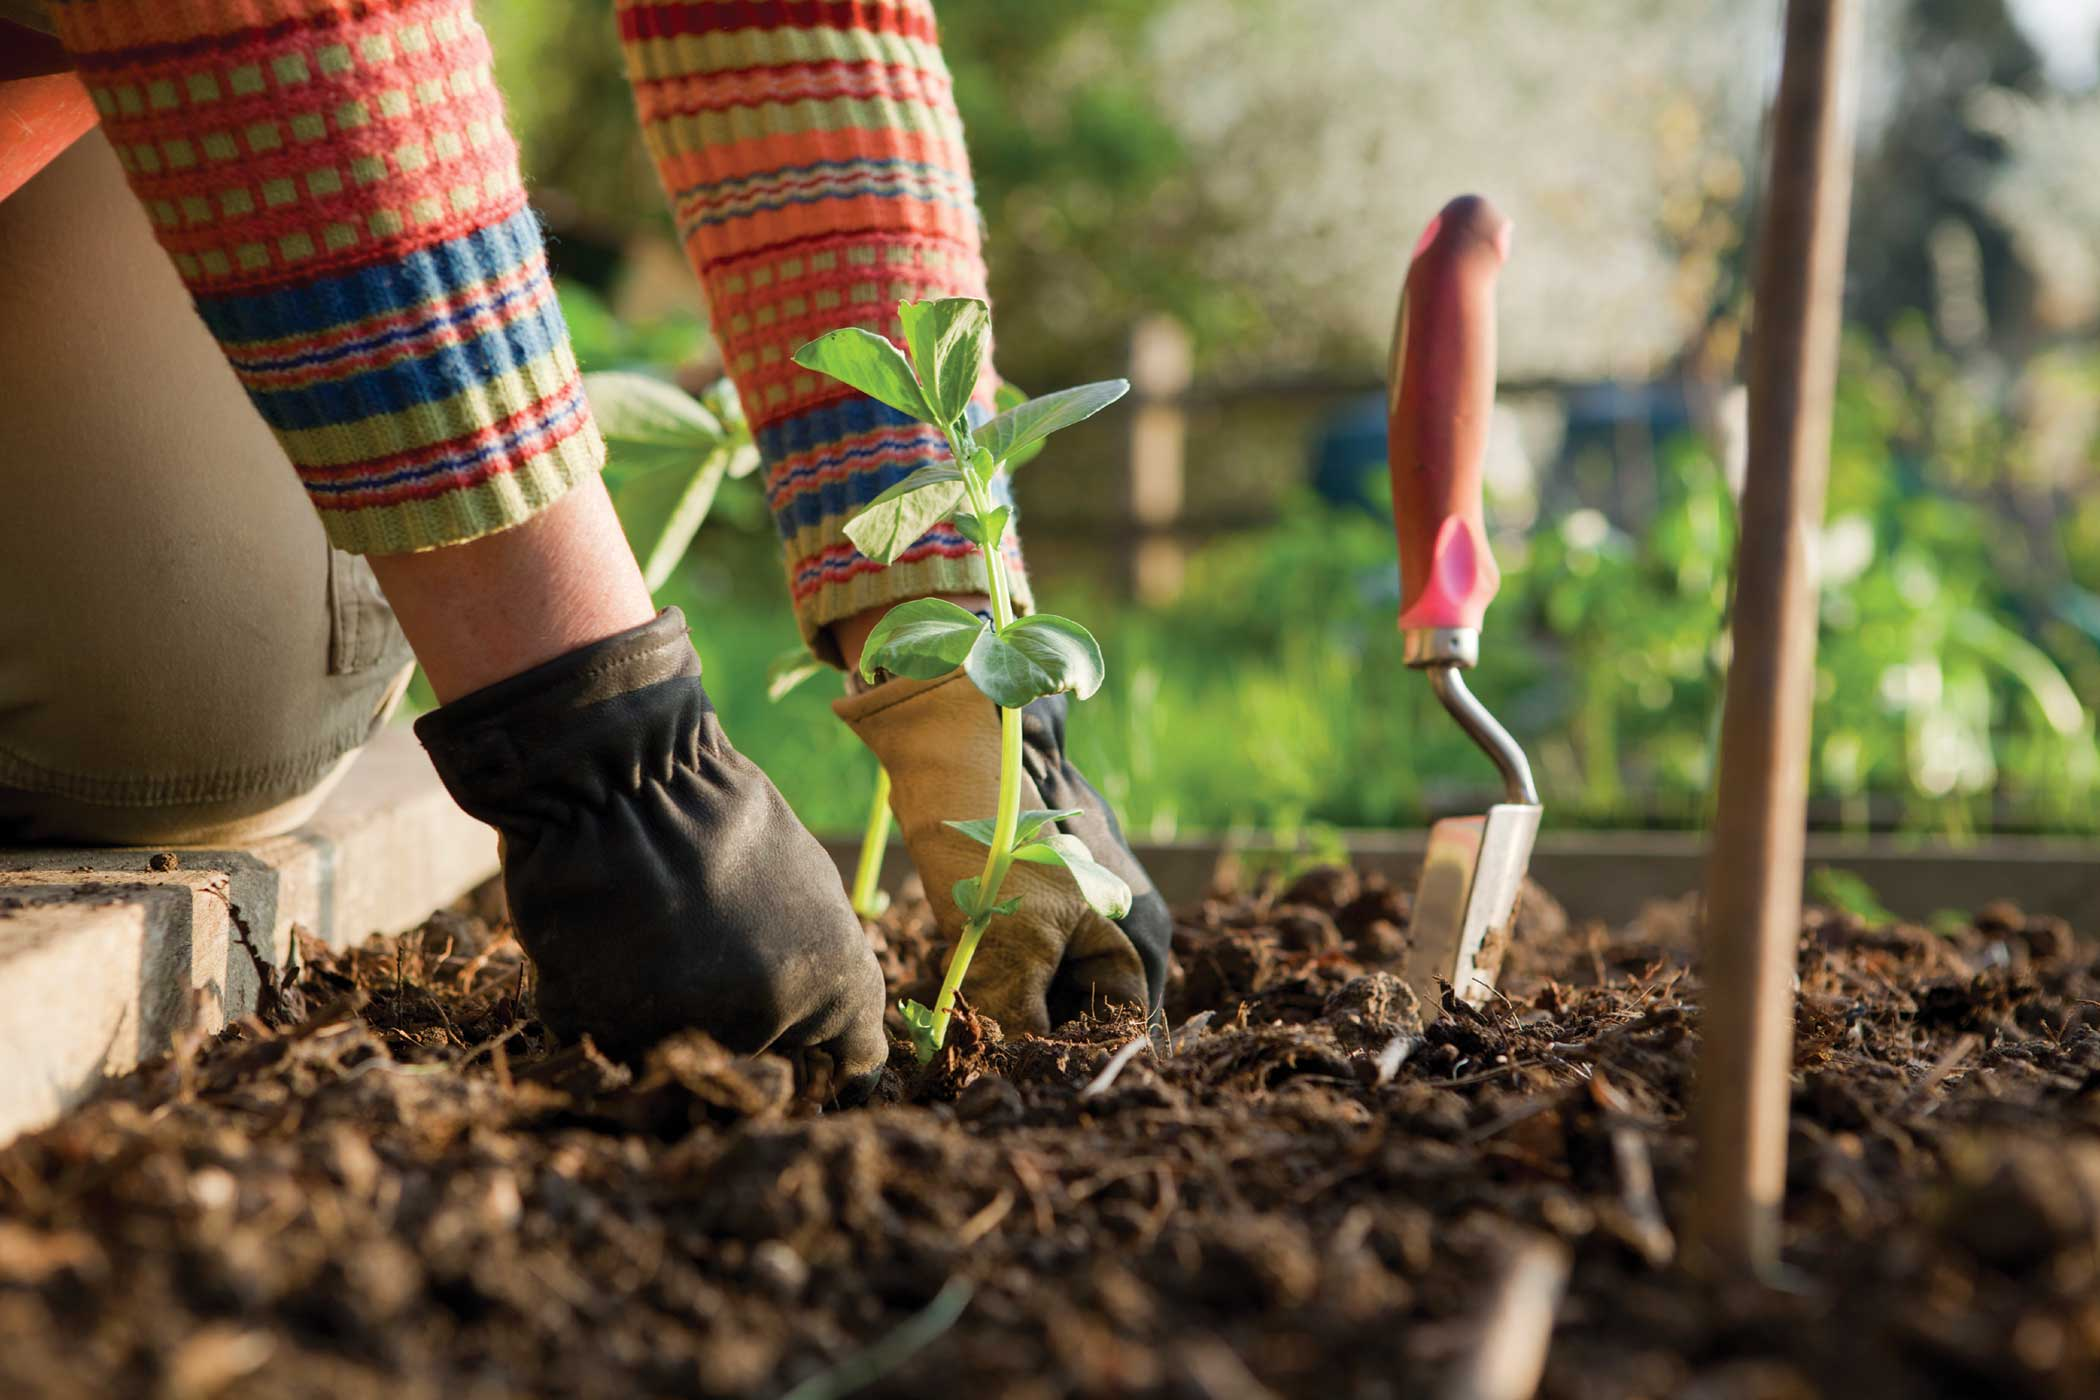 What is Gardening Therapy and why we should start doing it?